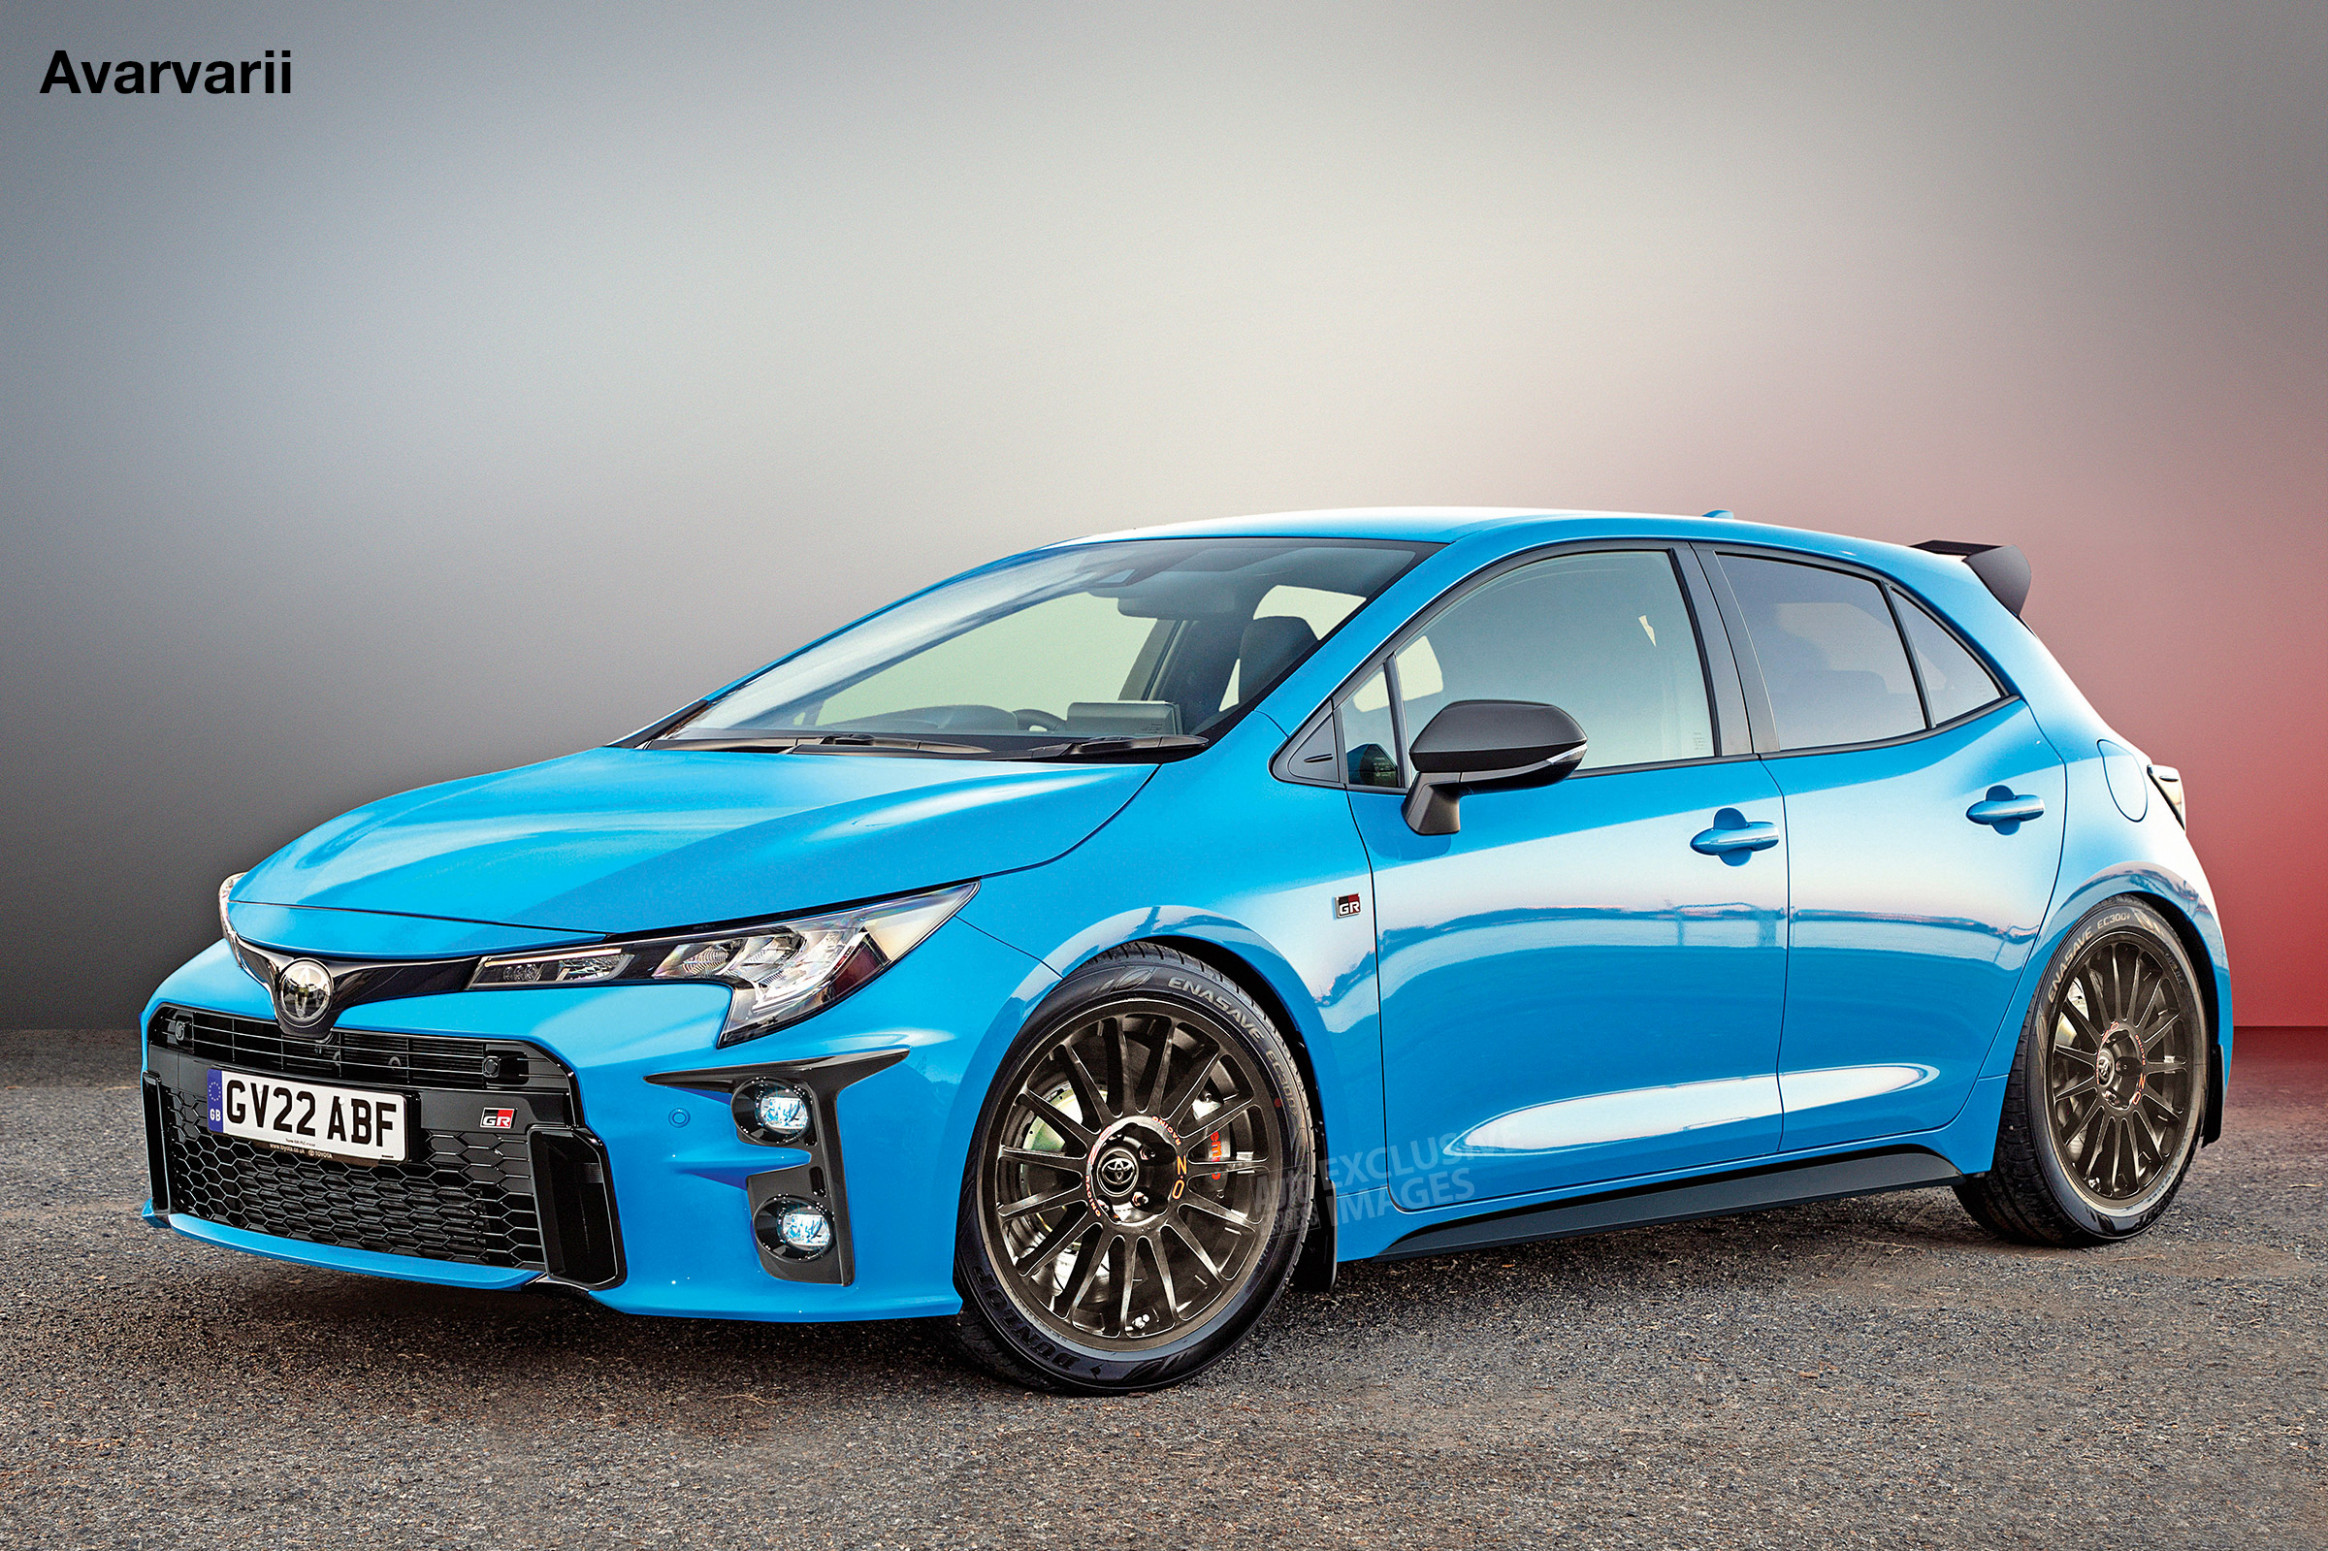 Redesign When Will The 2022 Toyota Corolla Be Available